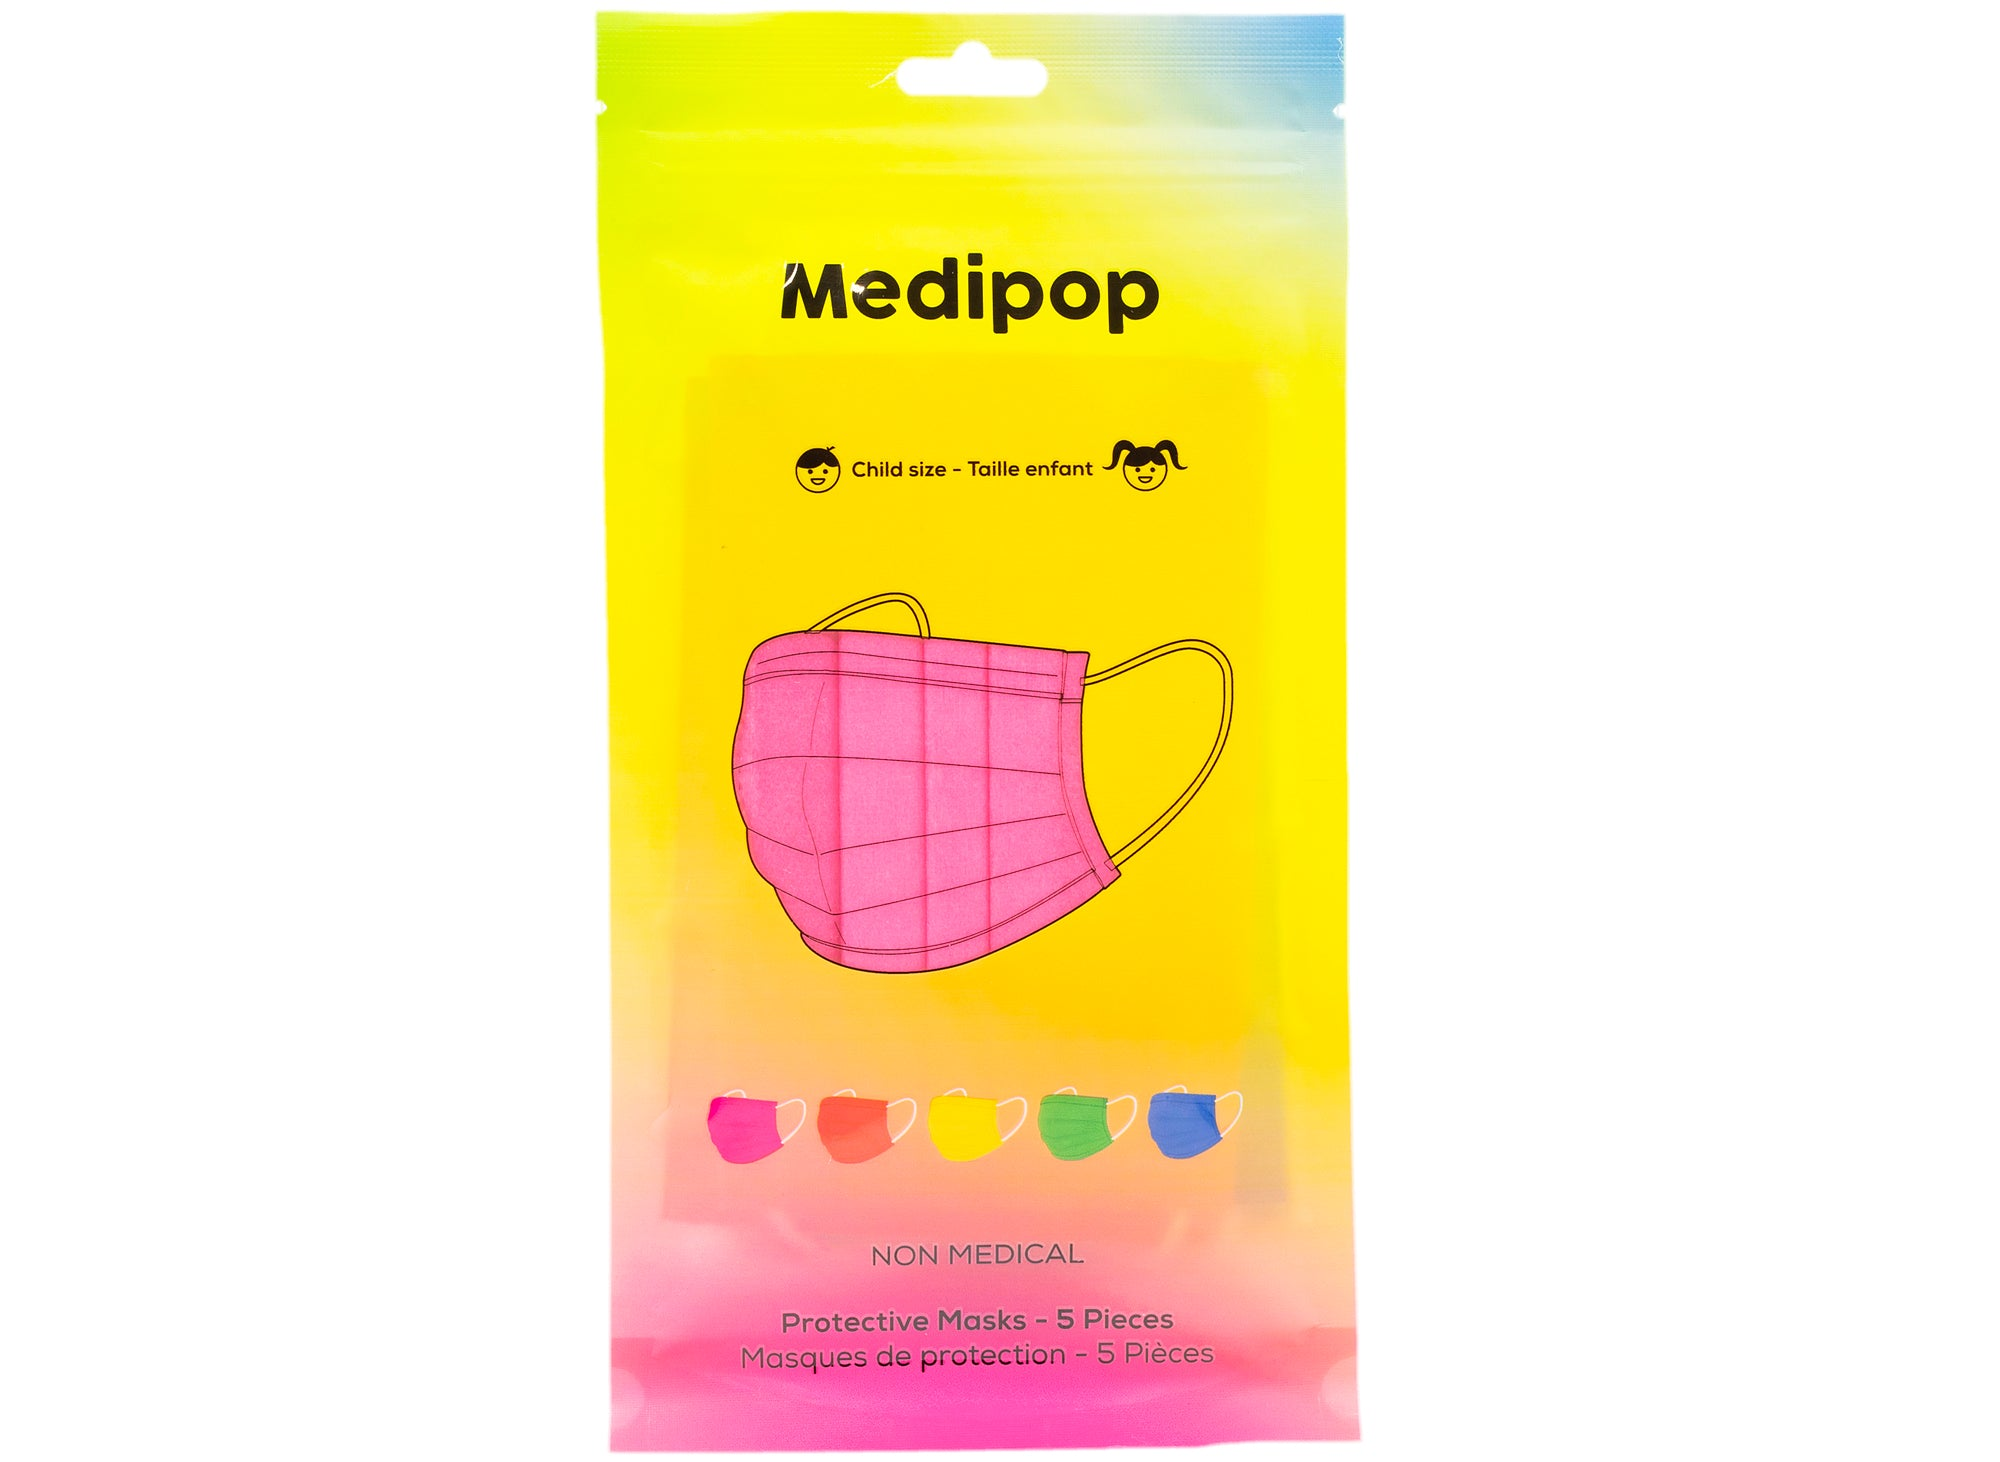 Medipop 5-Pack Standard Protective Children's Face Masks in Rainbow